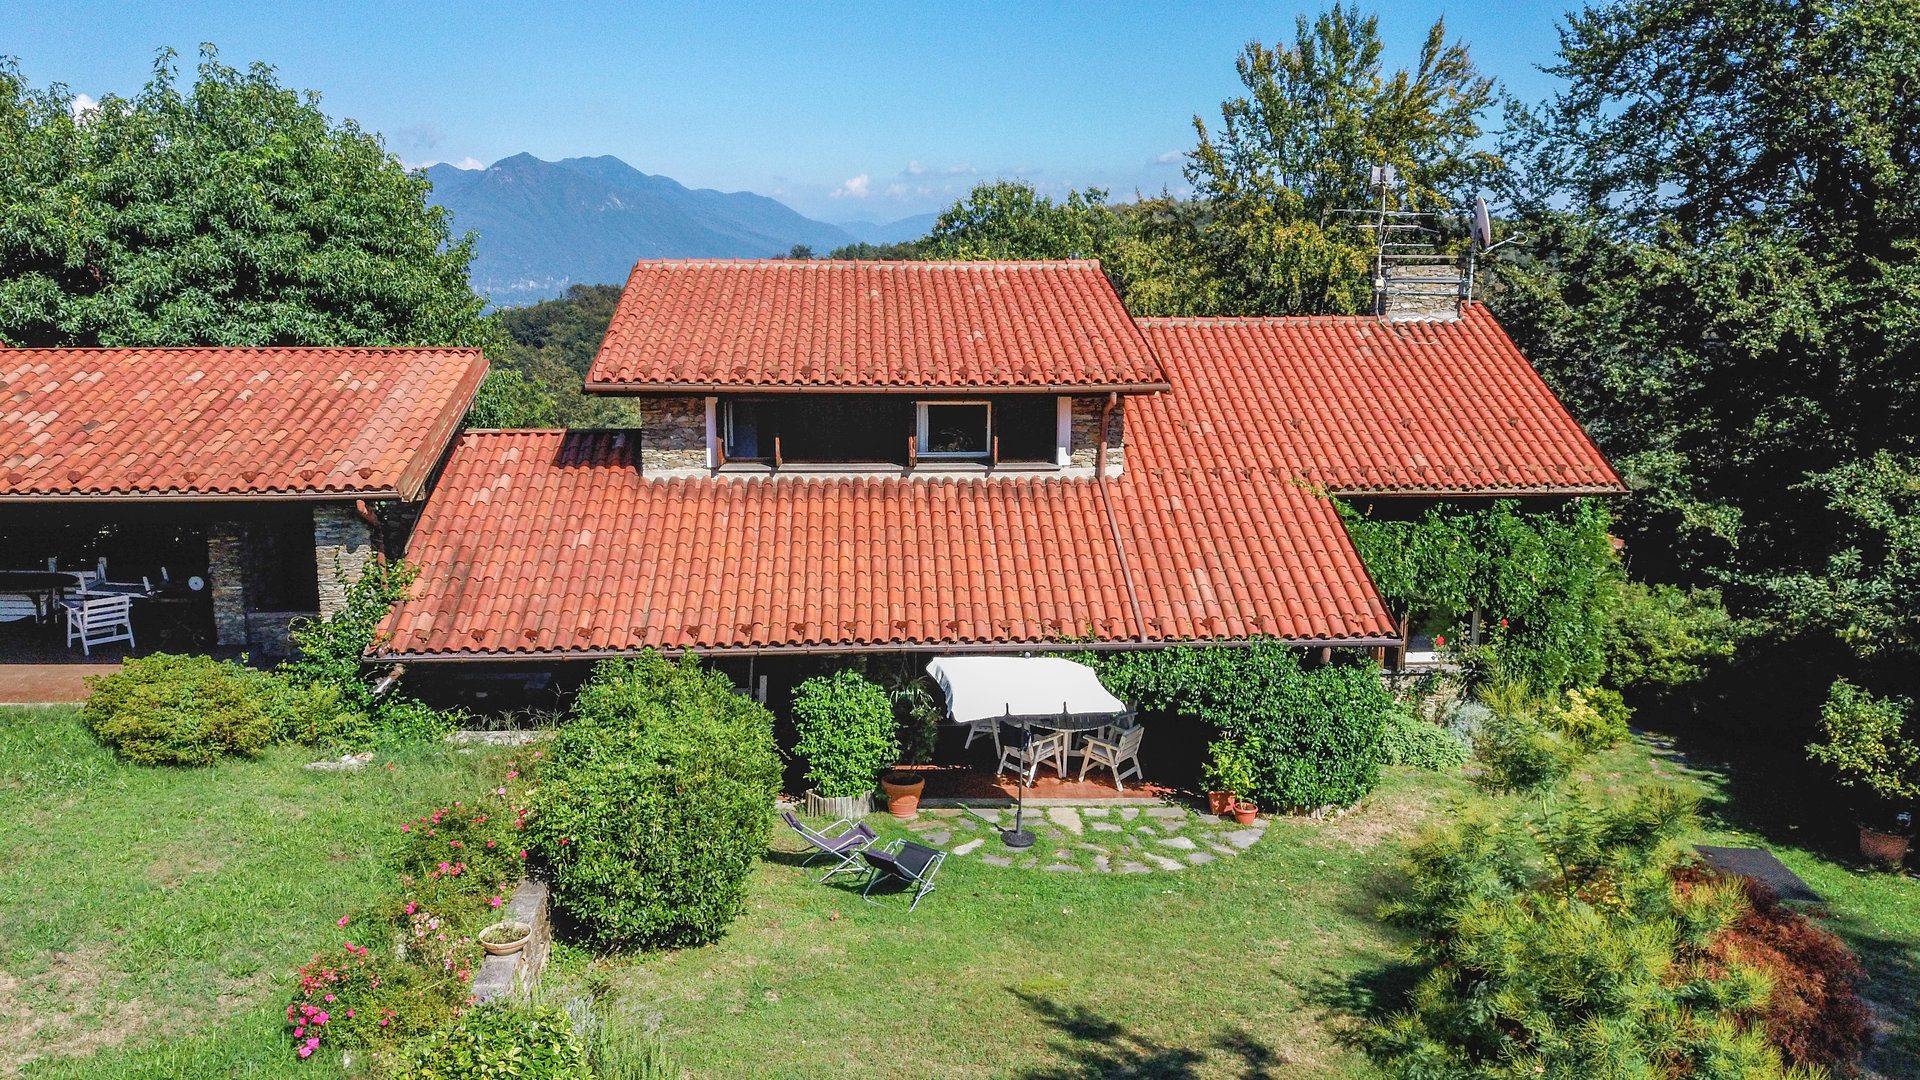 Villa with swimming pool for sale in a residence in Gignese